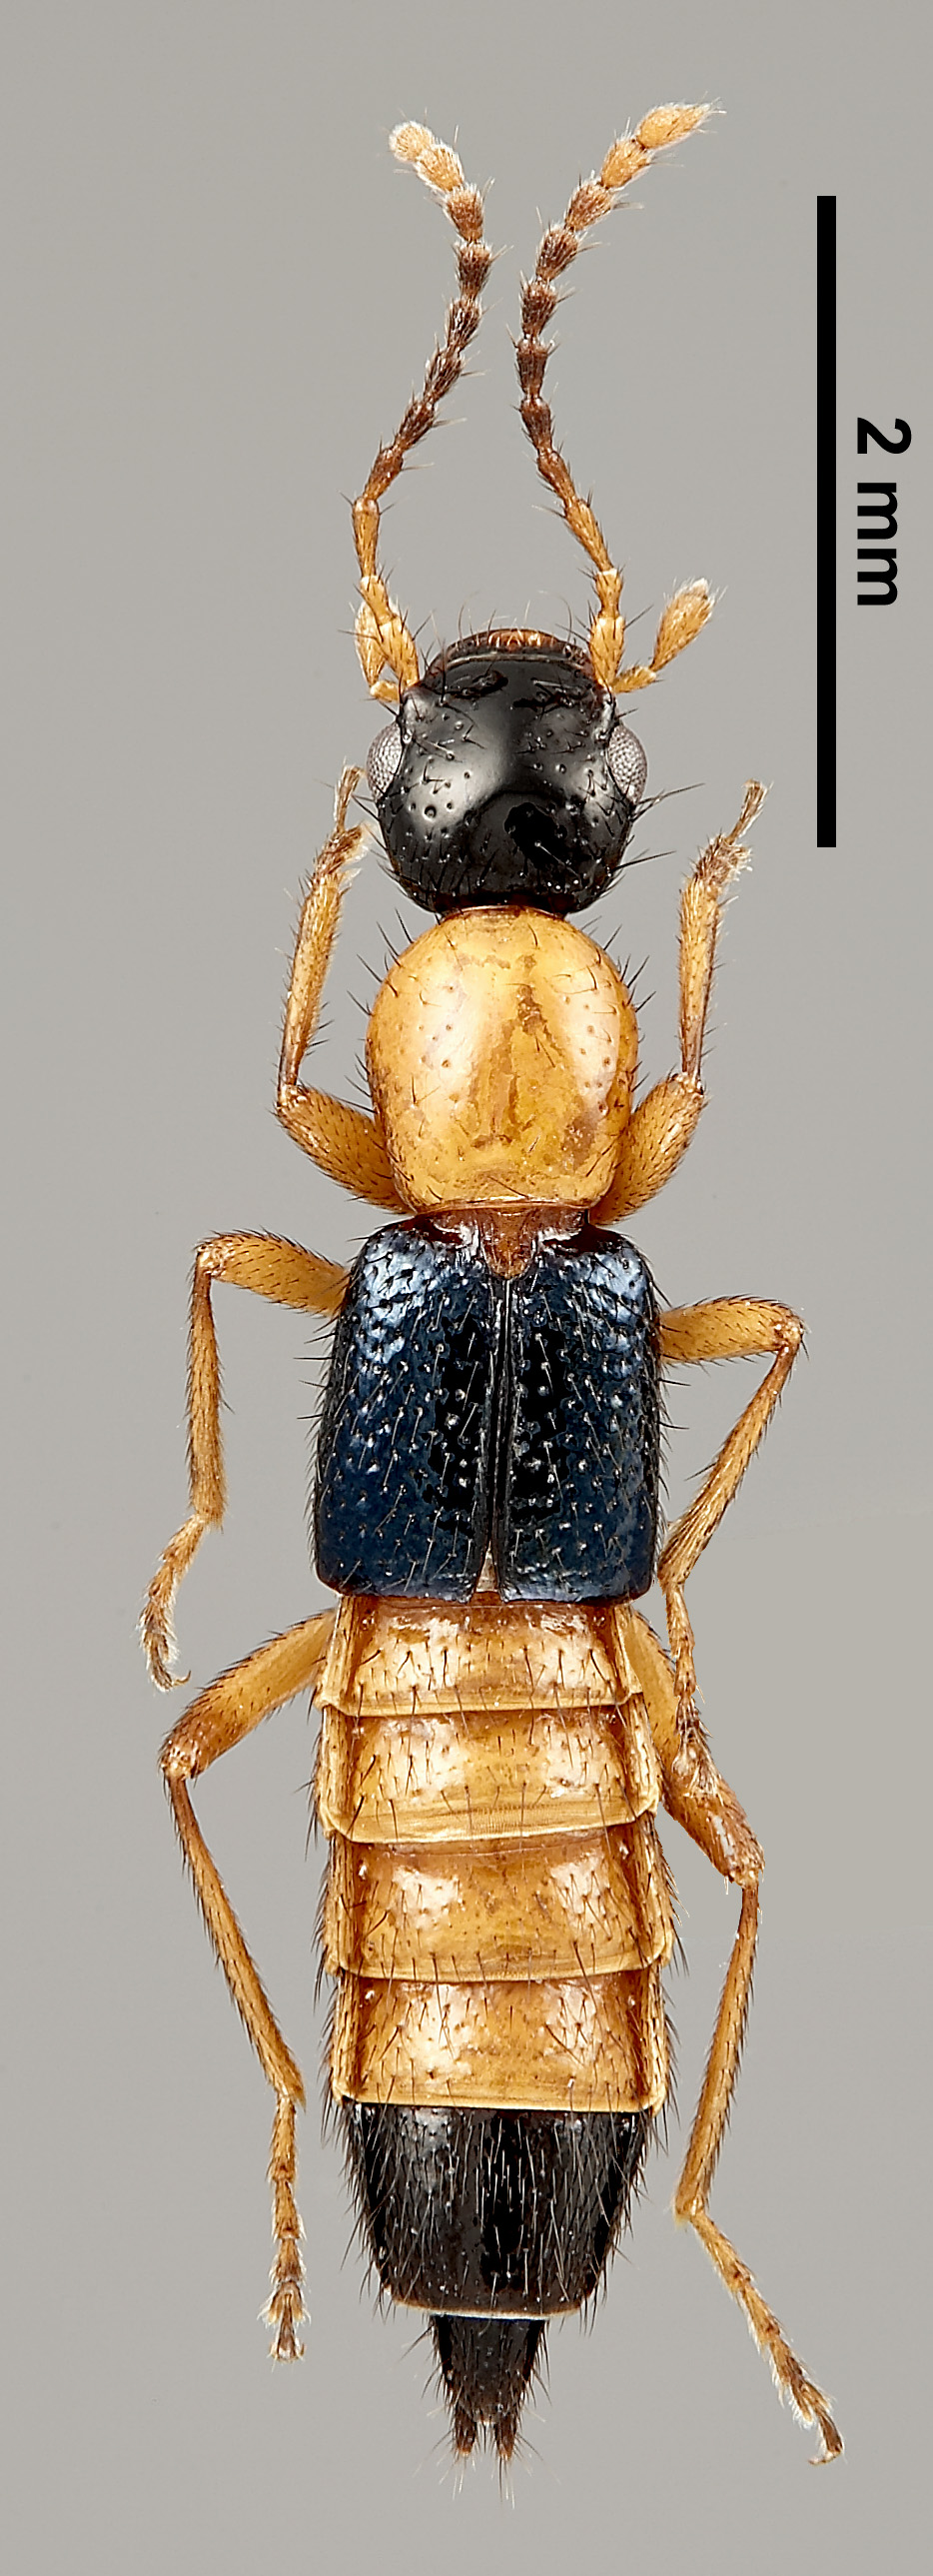 Image of Paederus littorarius